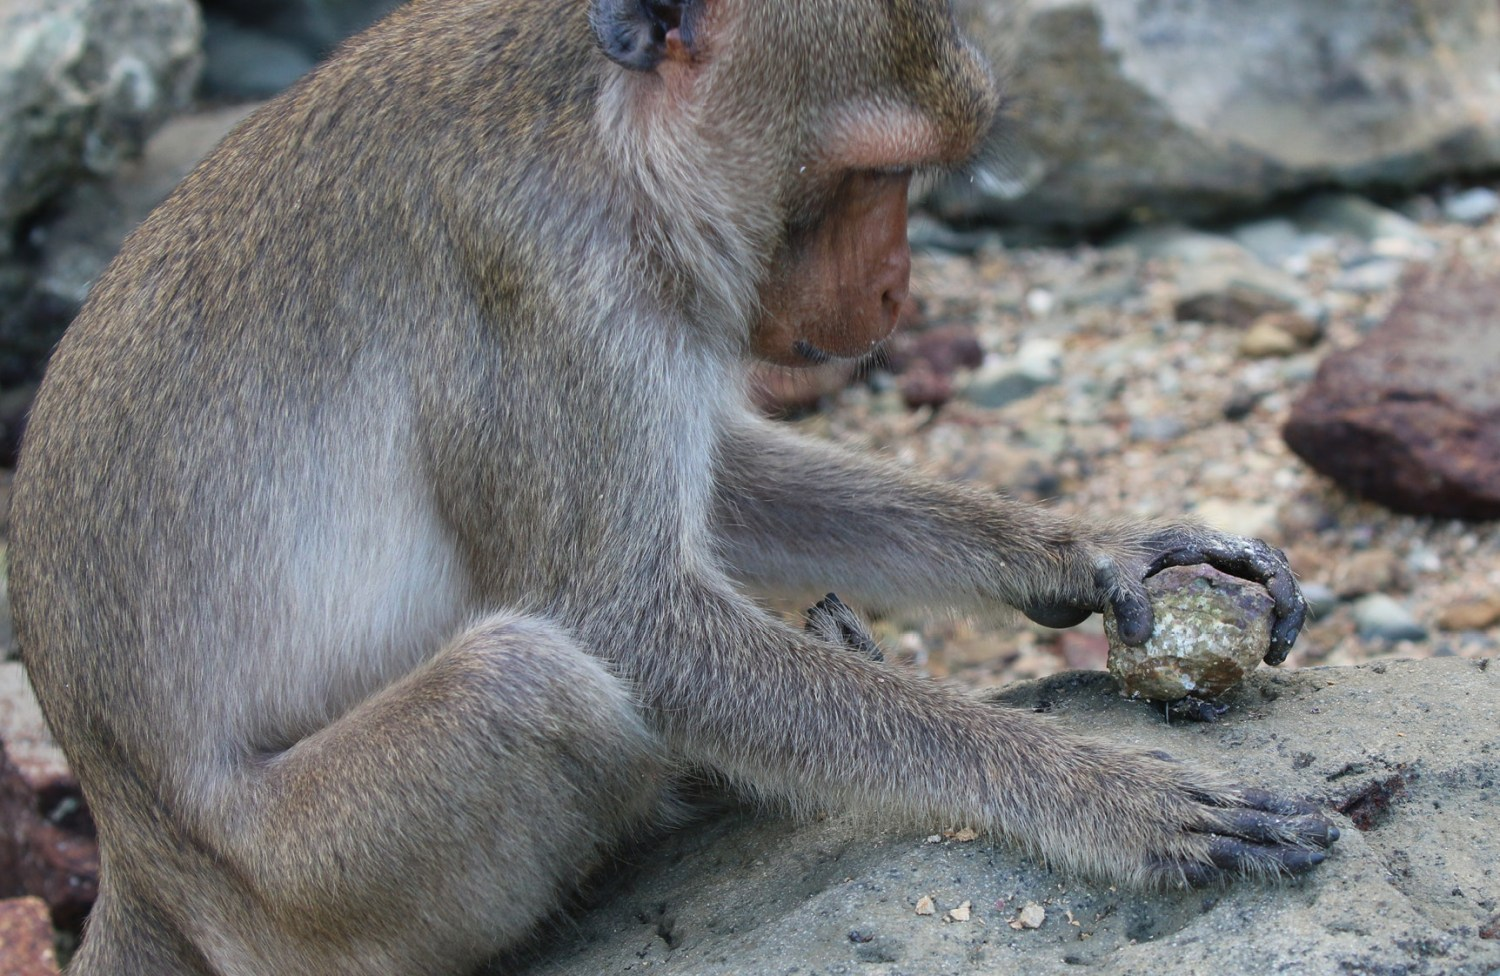 left Macaques carefully select stones suited to the task at hand. Here we see a macaque cracking open a sea snail (left) and oyster (Below left). bottom Australopithecus sediba has provided near-complete sets of hand bones. This anatomy was well-suited to climbing, but could also perform precision grips of the sort needed when using tools.